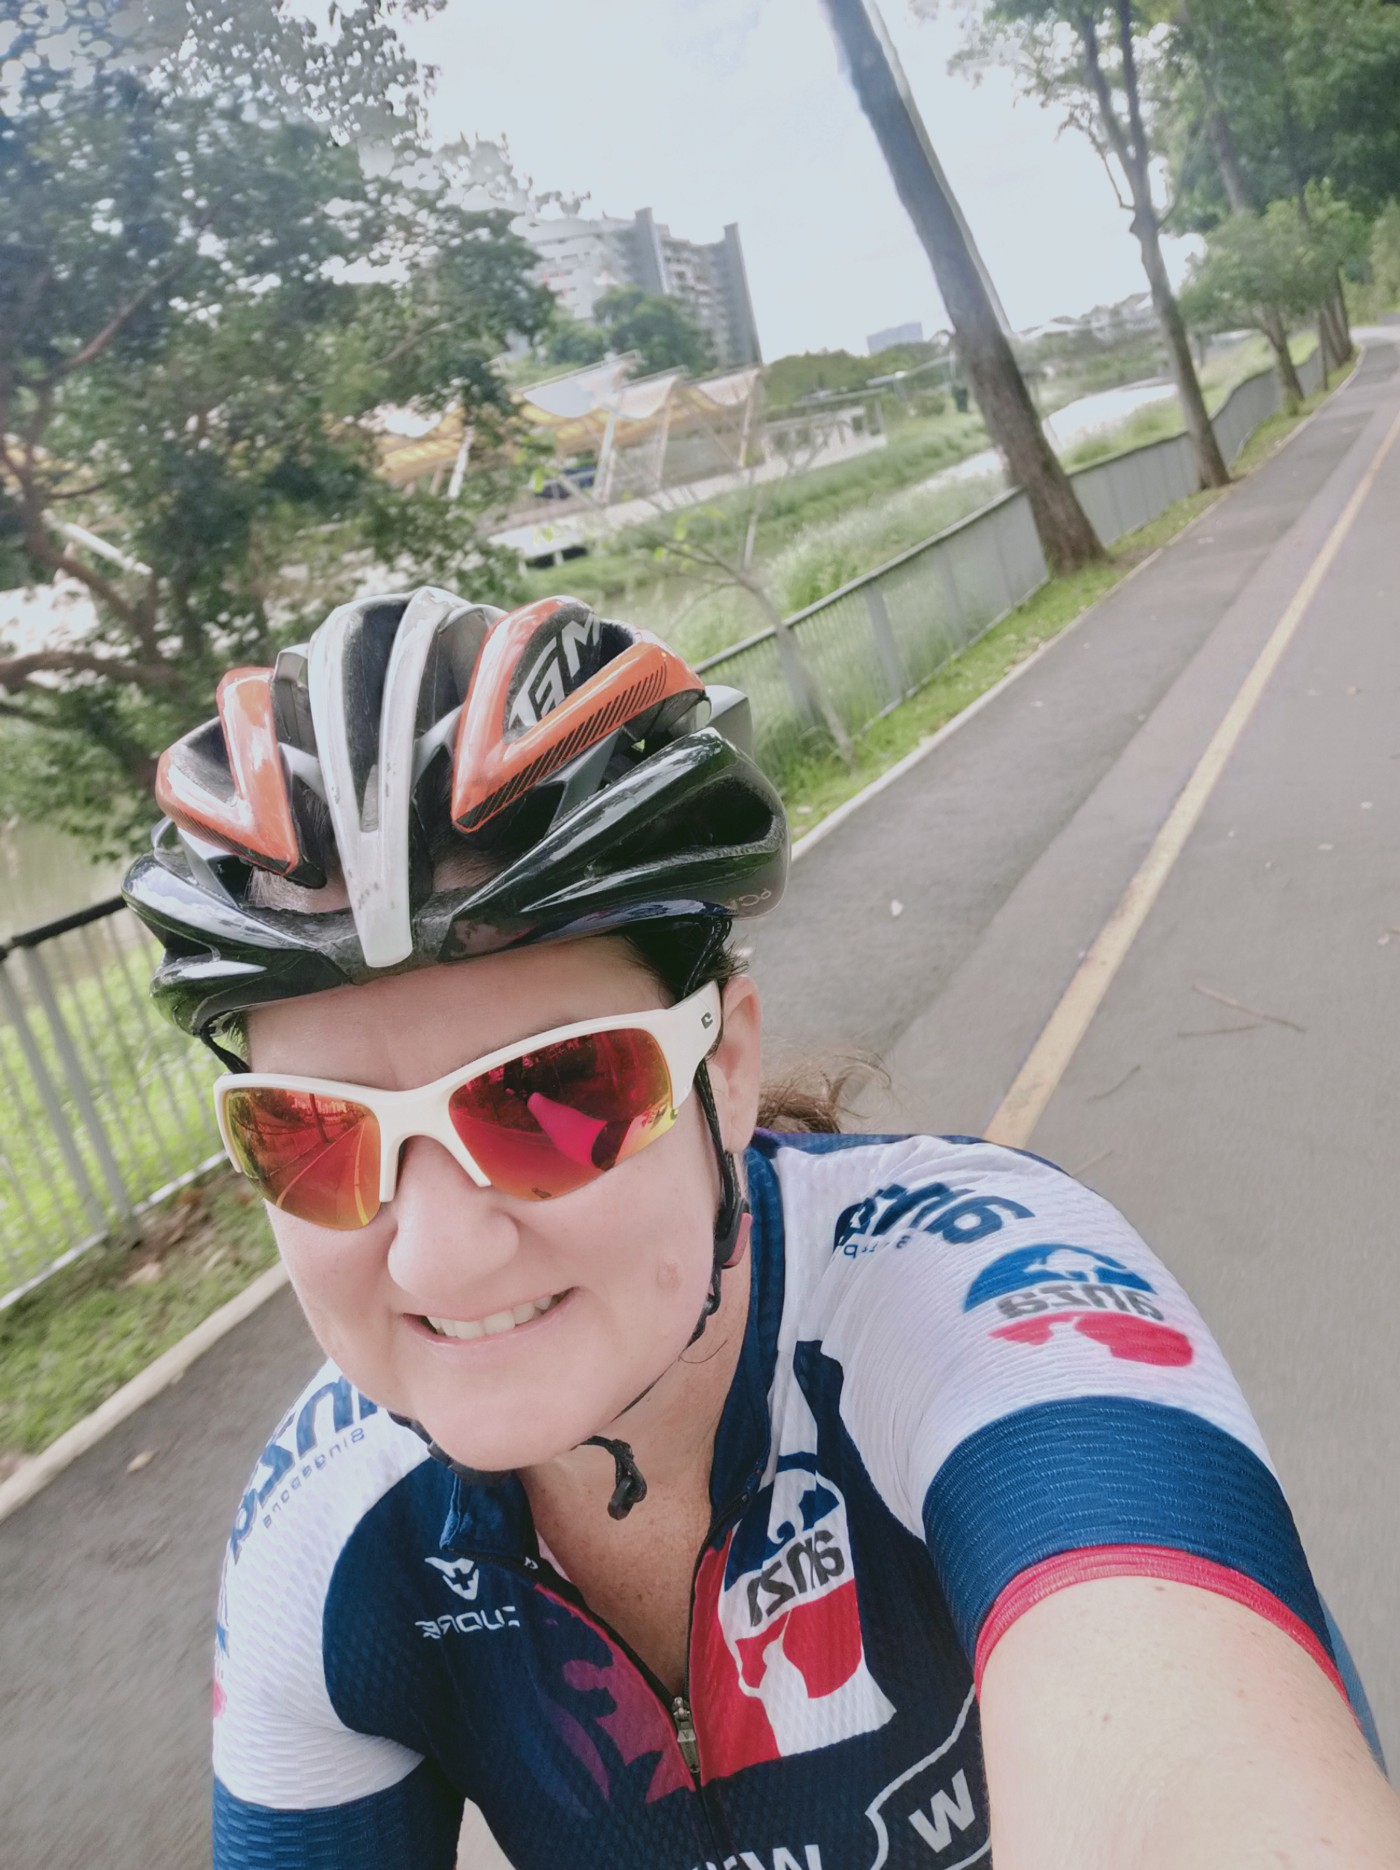 A selfi of a smiling woman wearing a cycling helment and sunglasses